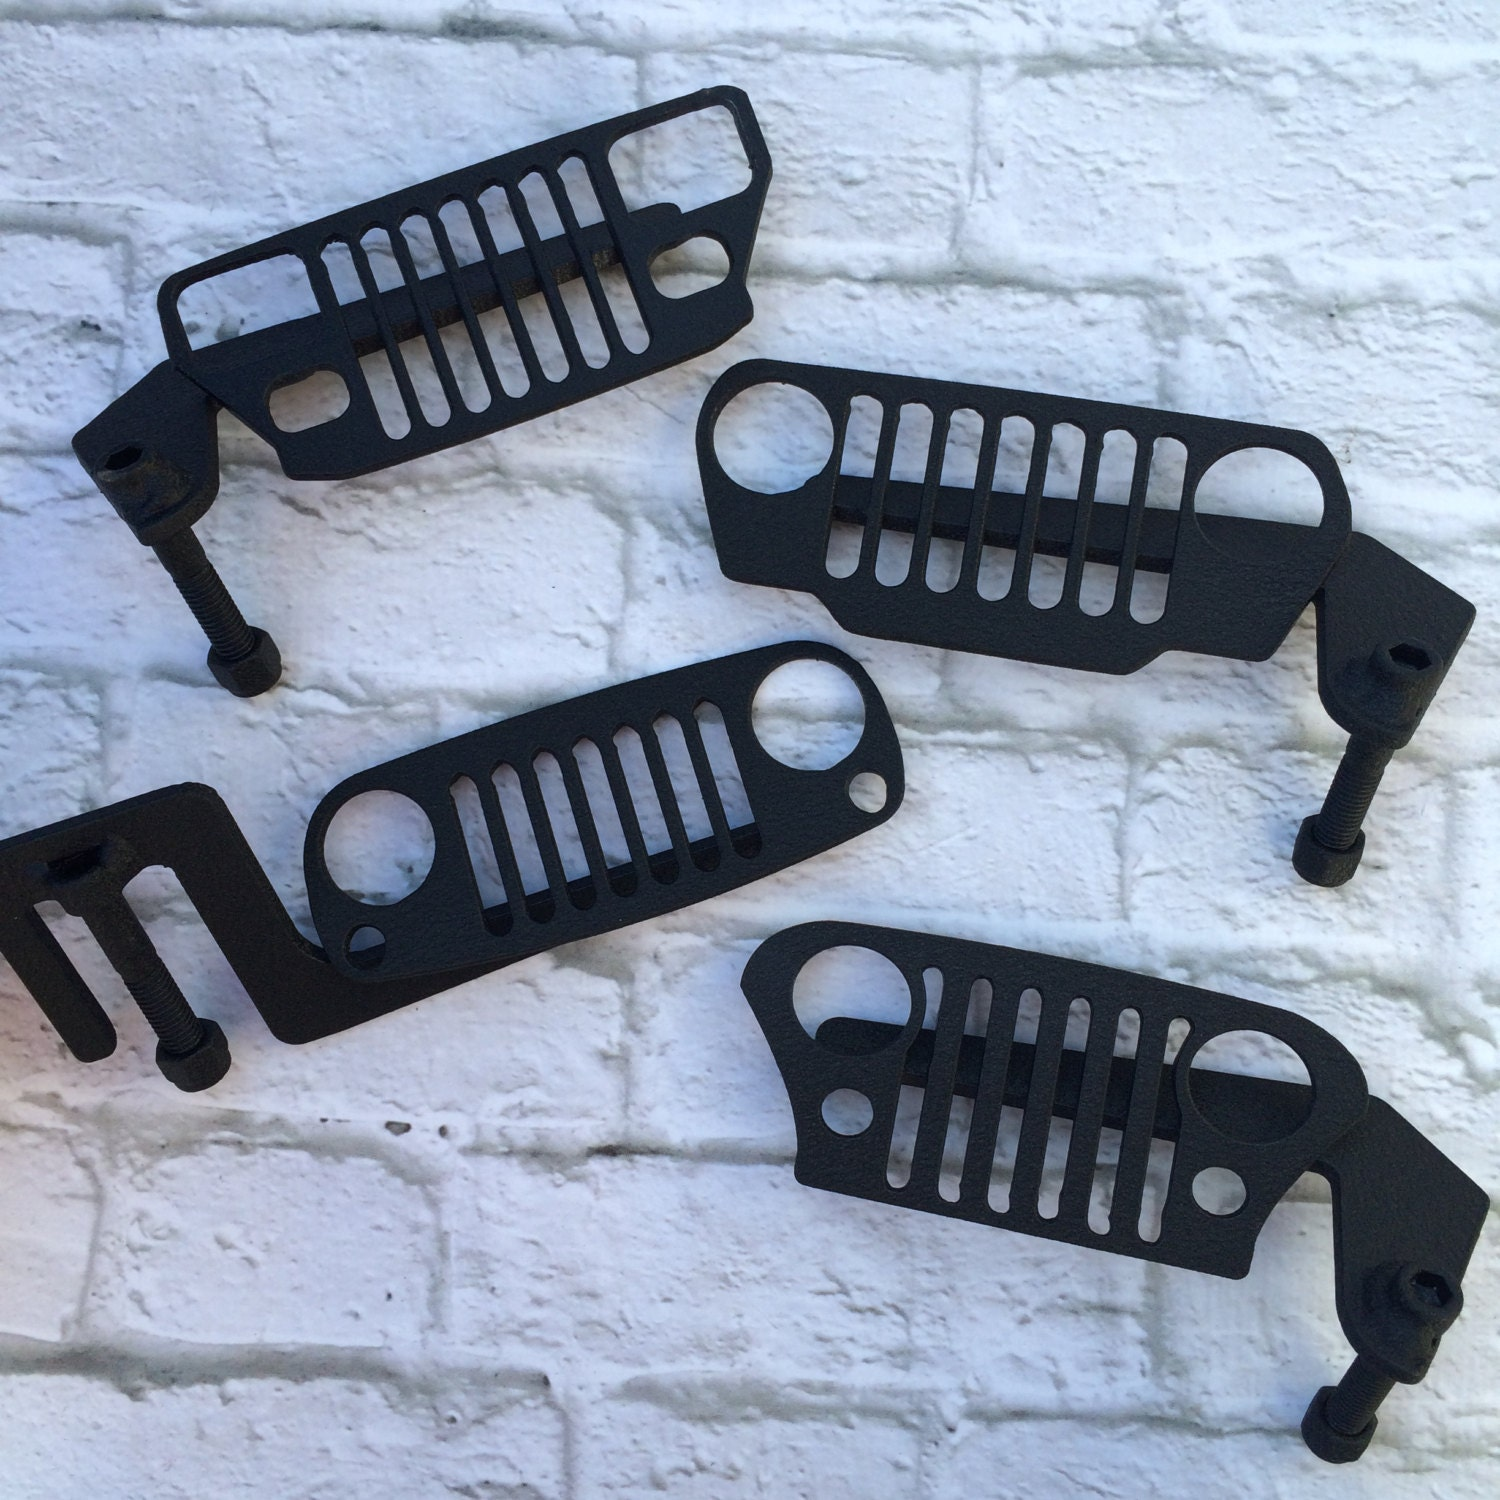 cj yj tj or j.k jeep grill foot pegs